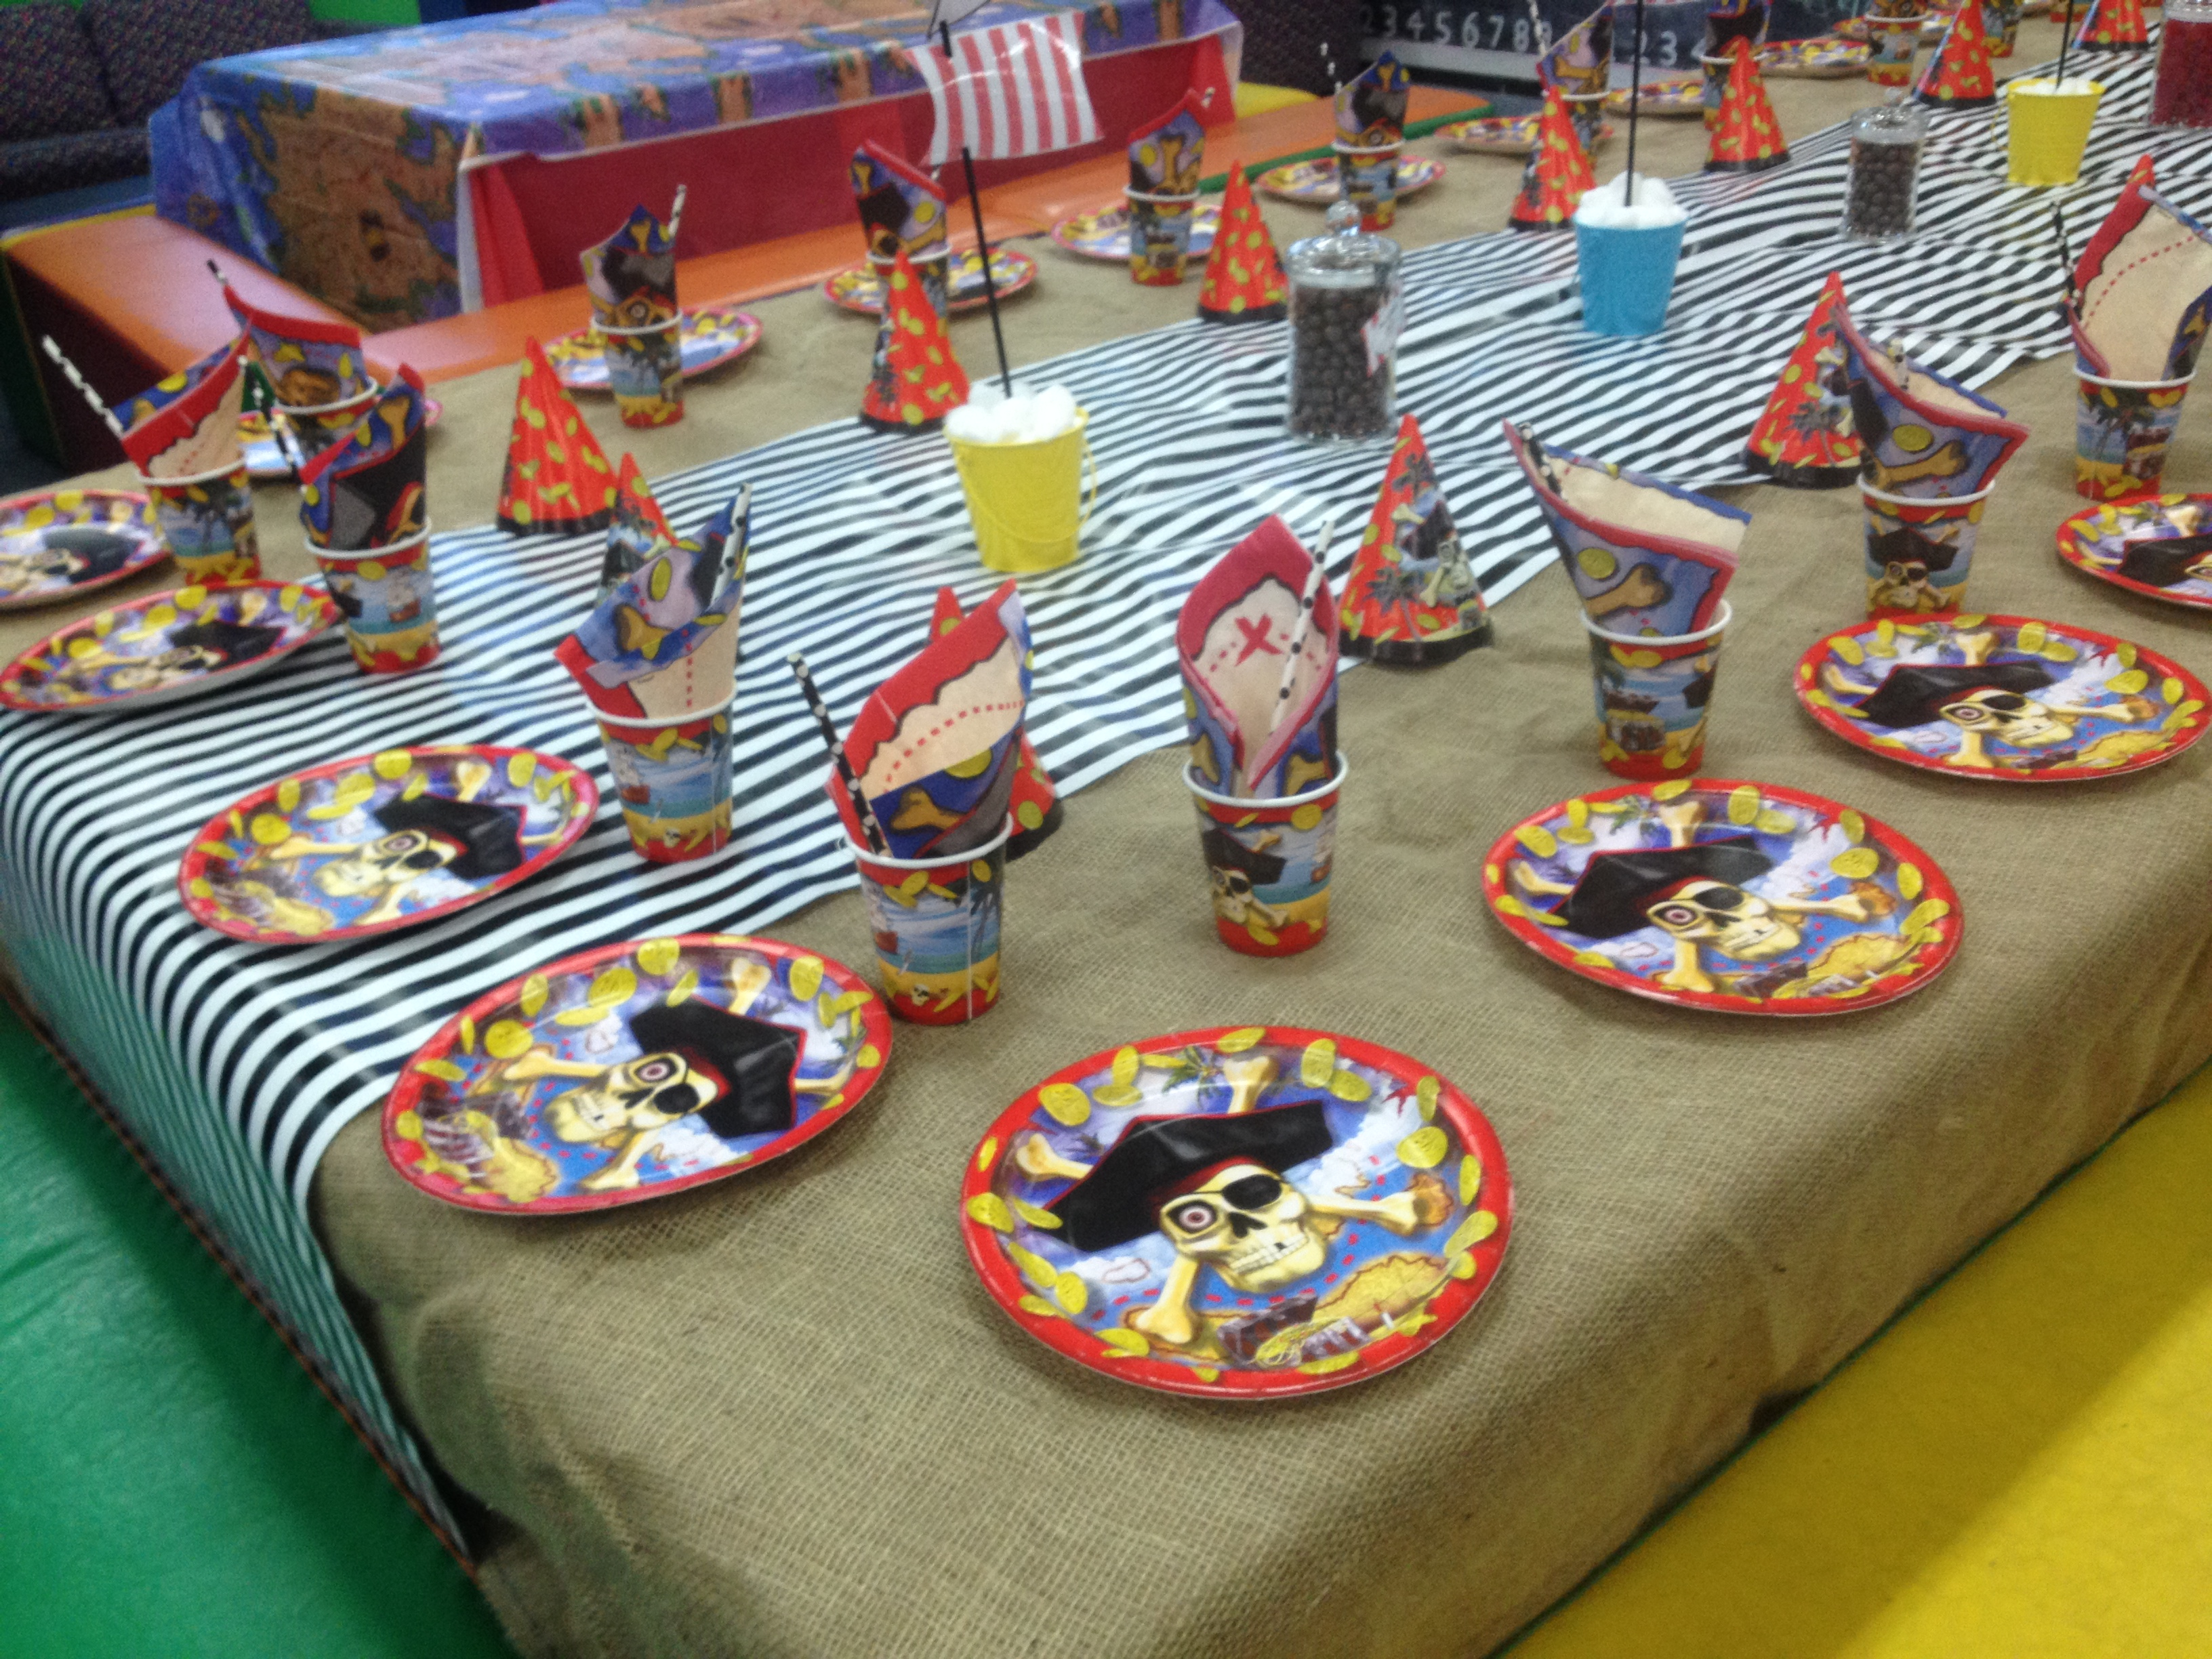 Pirate Party Table setting